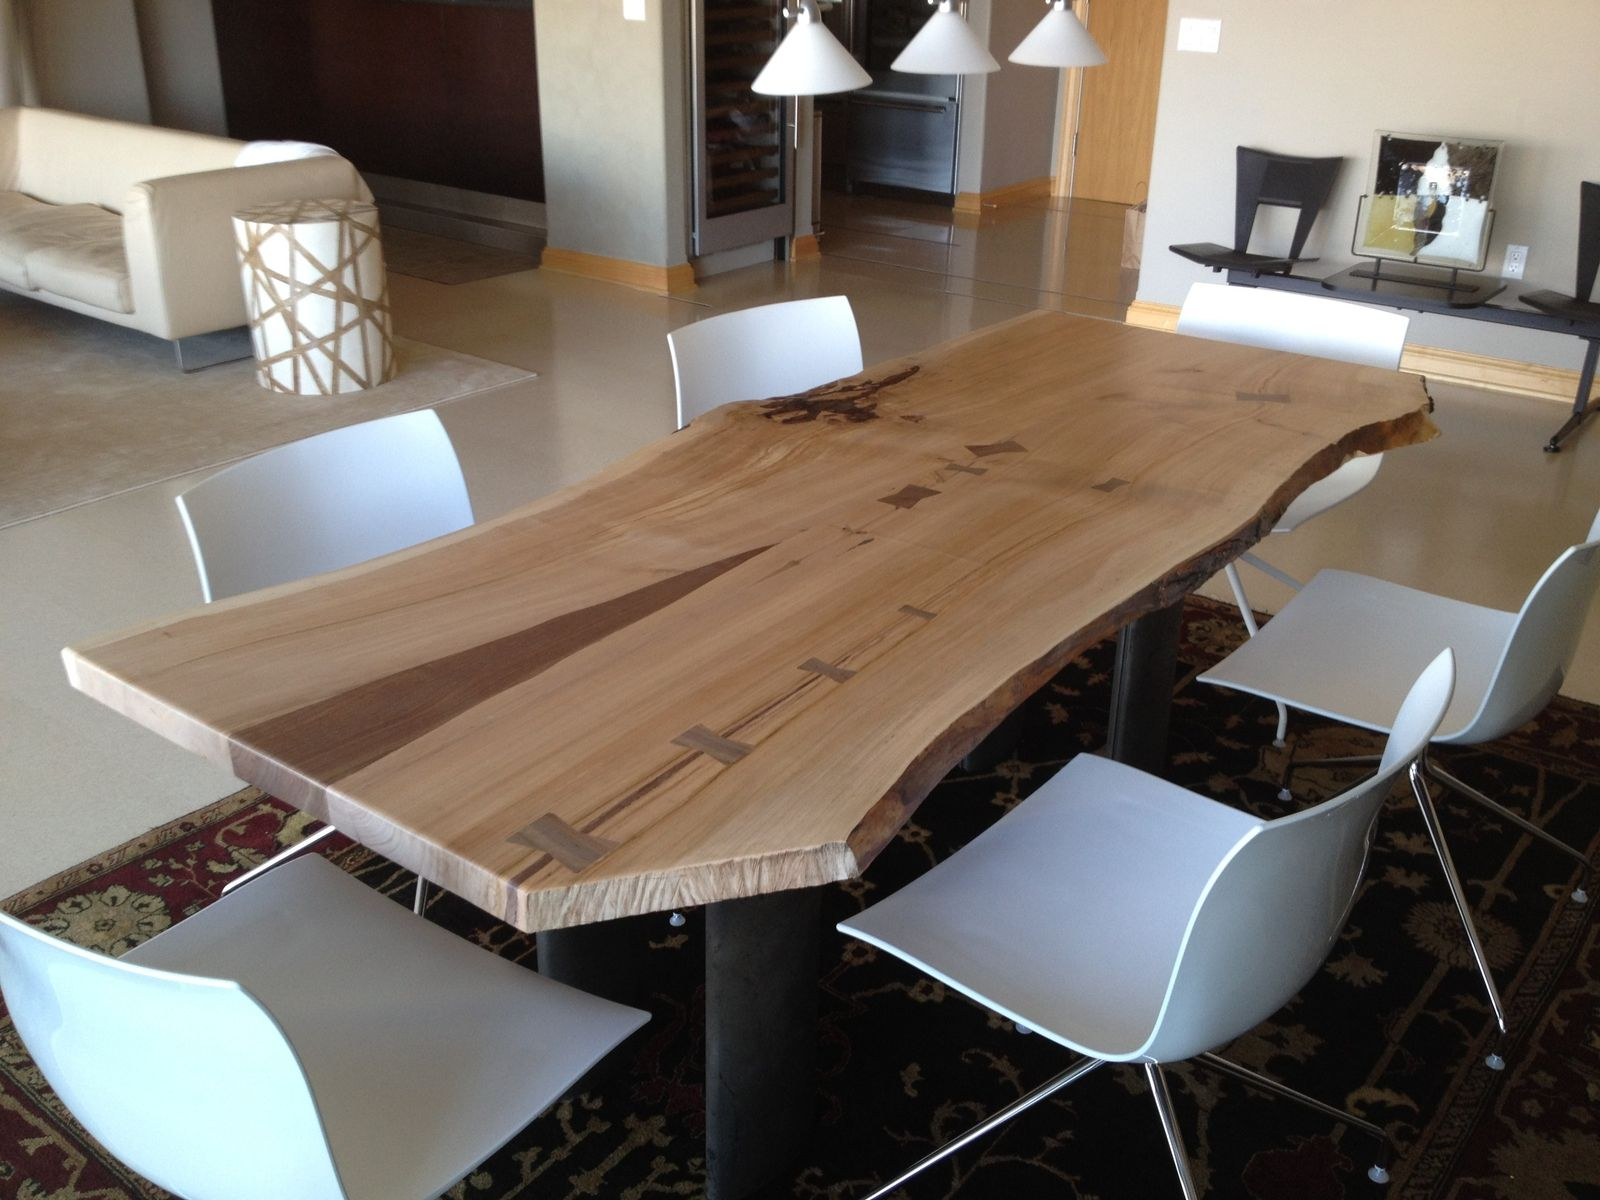 Hand Crafted Living Edge Cherry Dining Table By Opa's